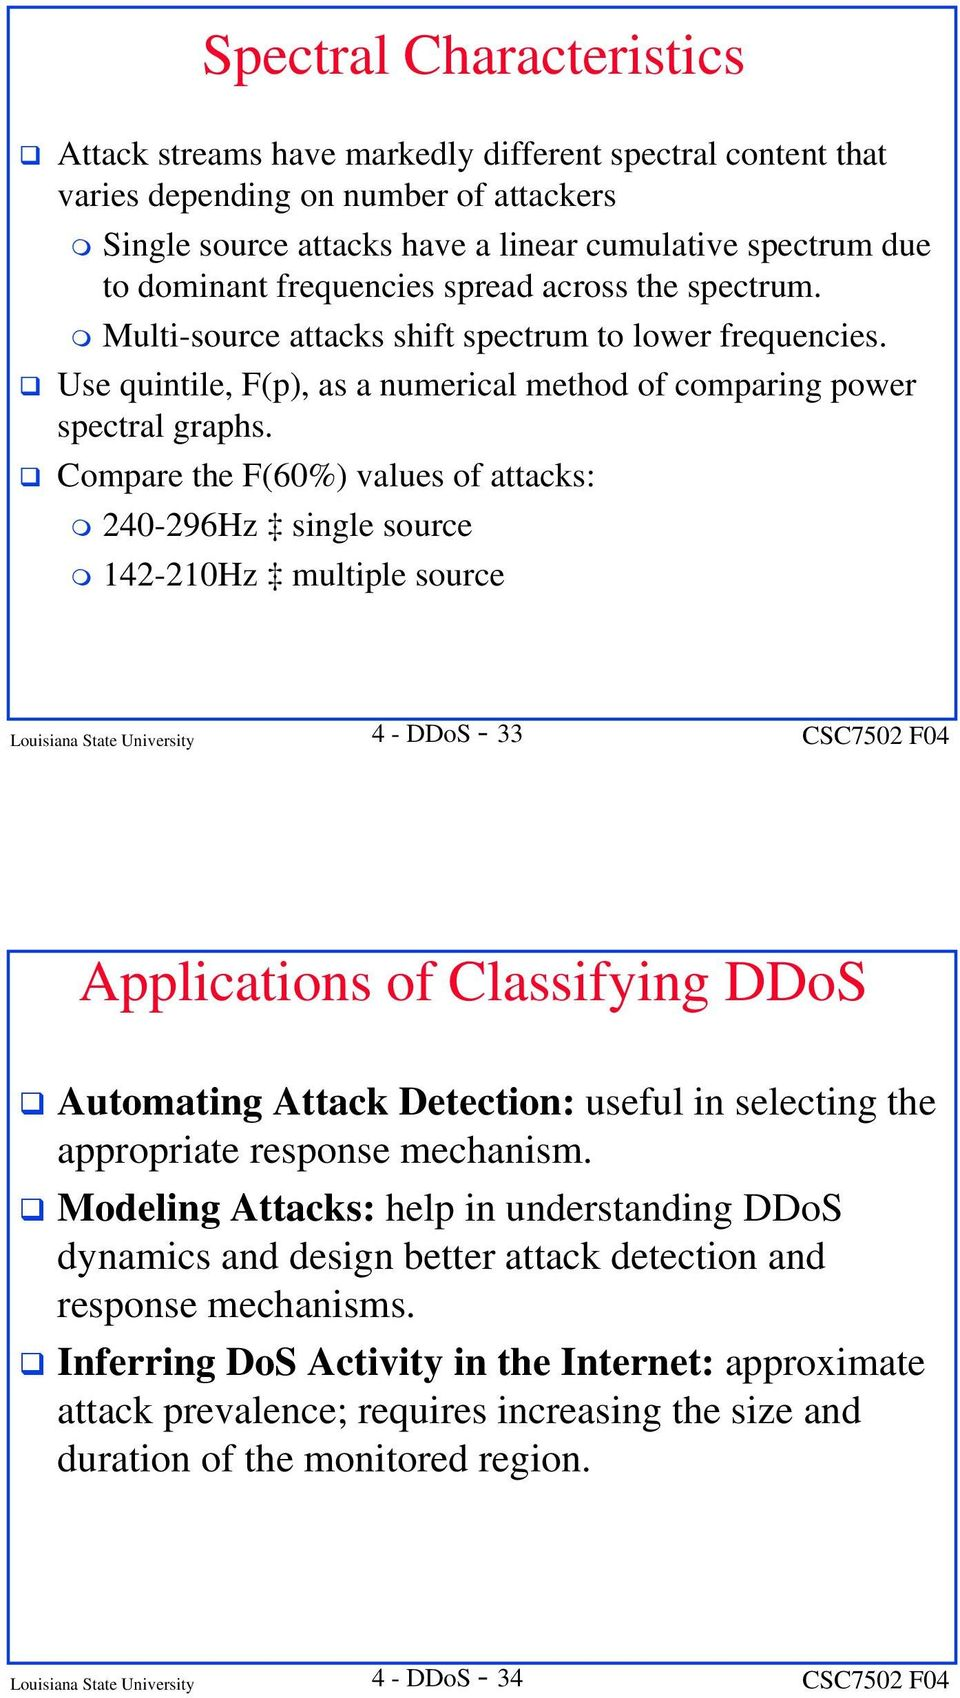 Compare the F(60%) values of attacks: 240-296Hz single source 142-210Hz multiple source Louisiana State University 4 - DDoS - 33 Applications of Classifying DDoS Automating Attack Detection: useful